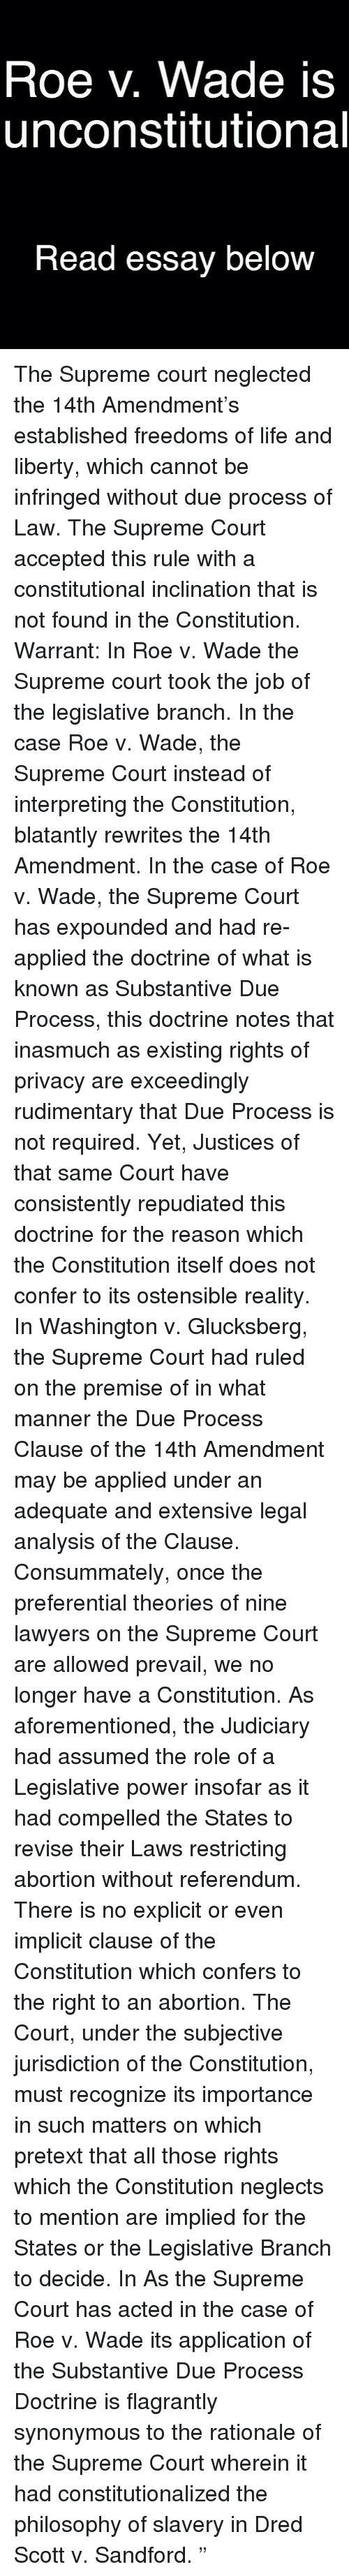 roe v wade is unconstitutional essay below the supreme court lawyer memes and supreme roe v wade is unconstitutional essay below